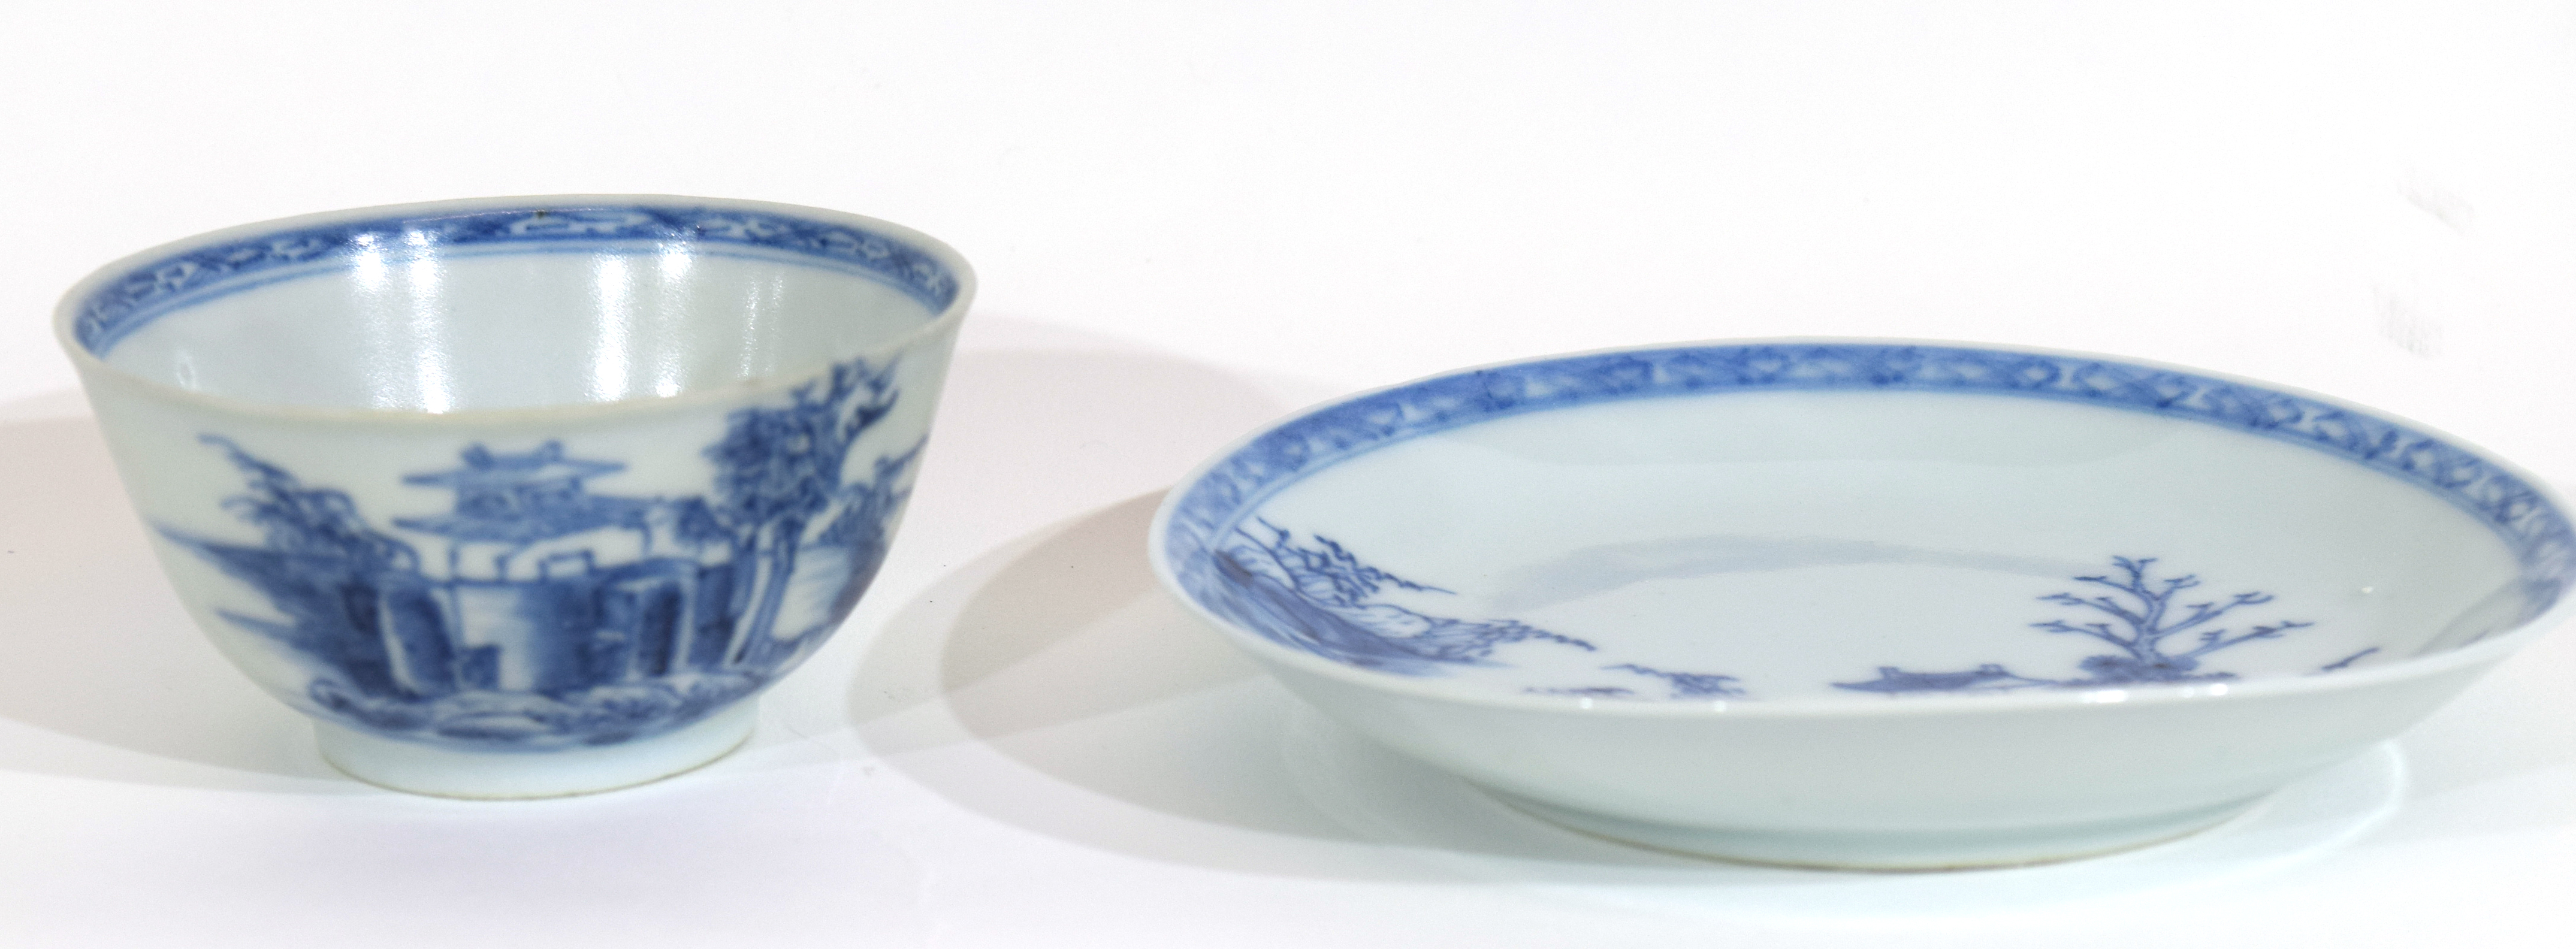 18th century Chinese porcelain Nanking Cargo tea bowl and saucer - Image 4 of 15